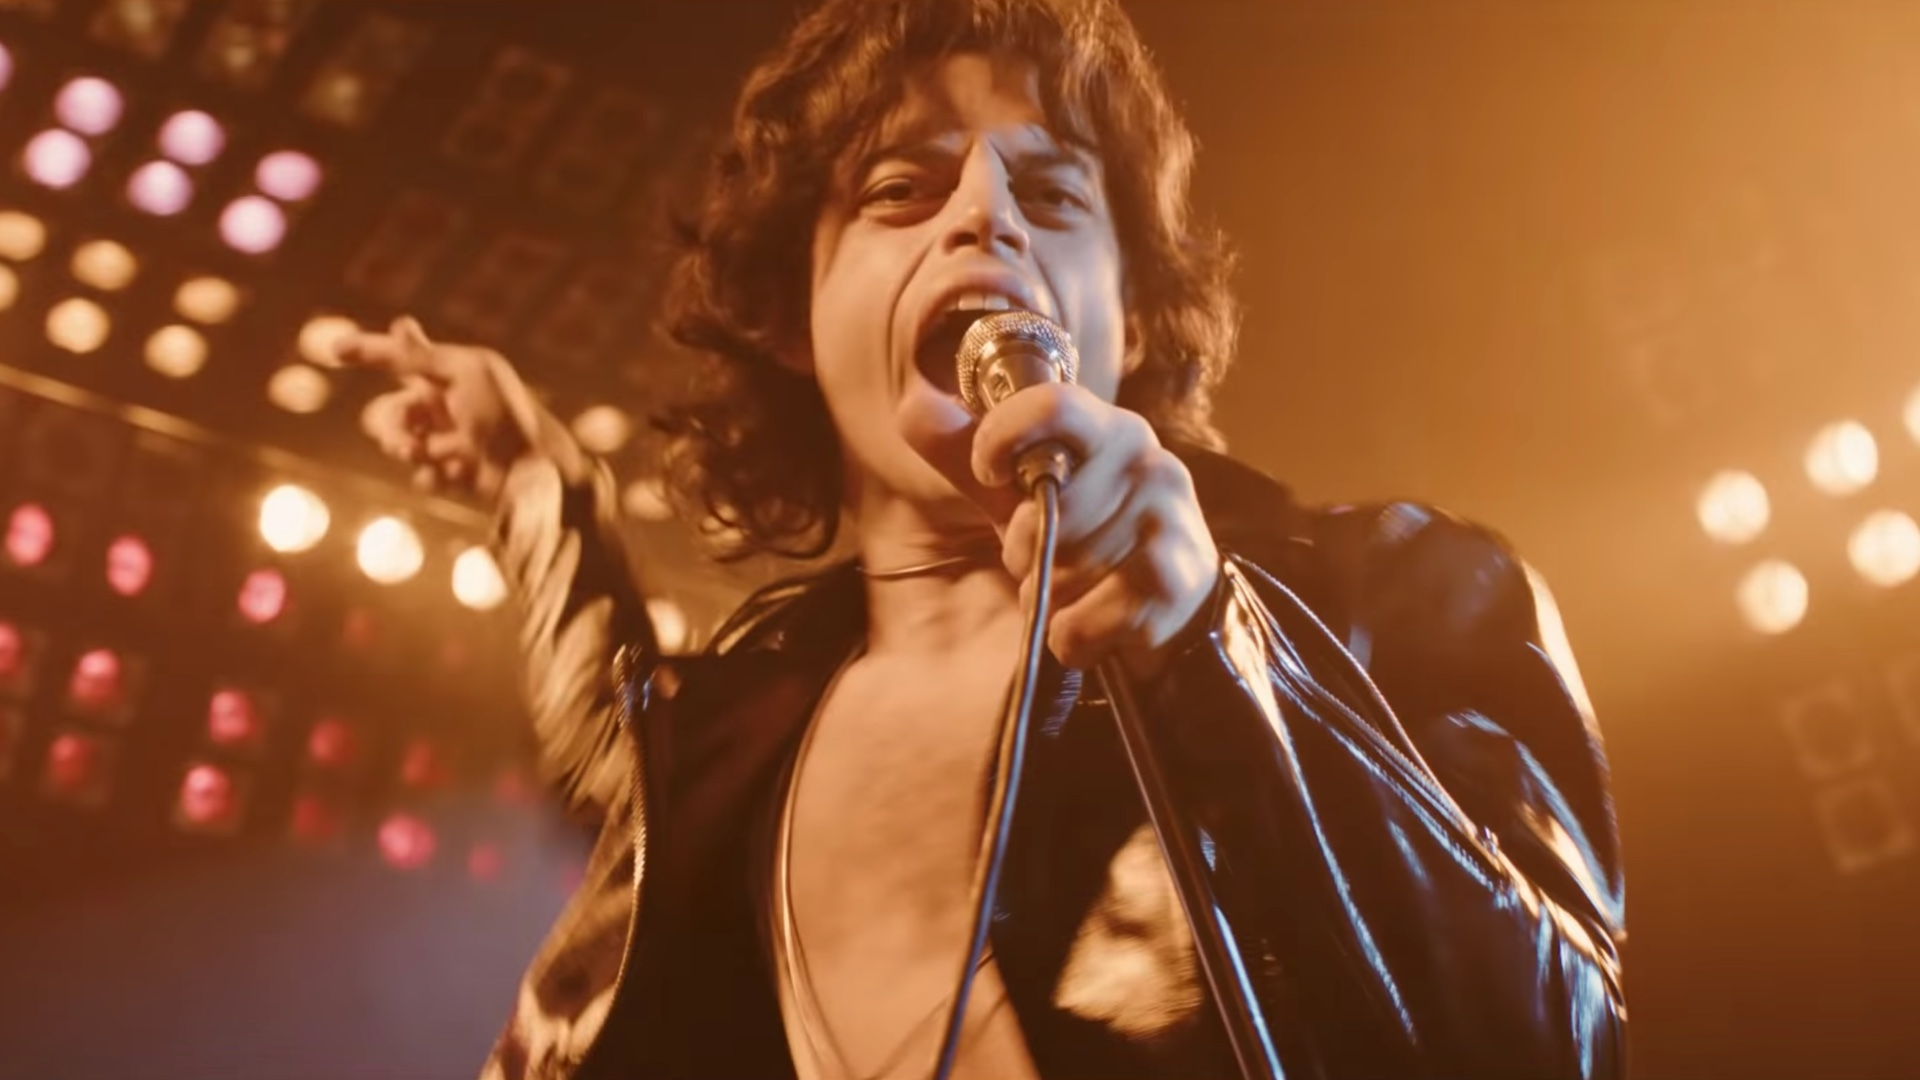 a32c02c1cf49 Freddie Mercury Needs Higher Note in This Clip From BOHEMIAN RHAPSODY —  GeekTyrant